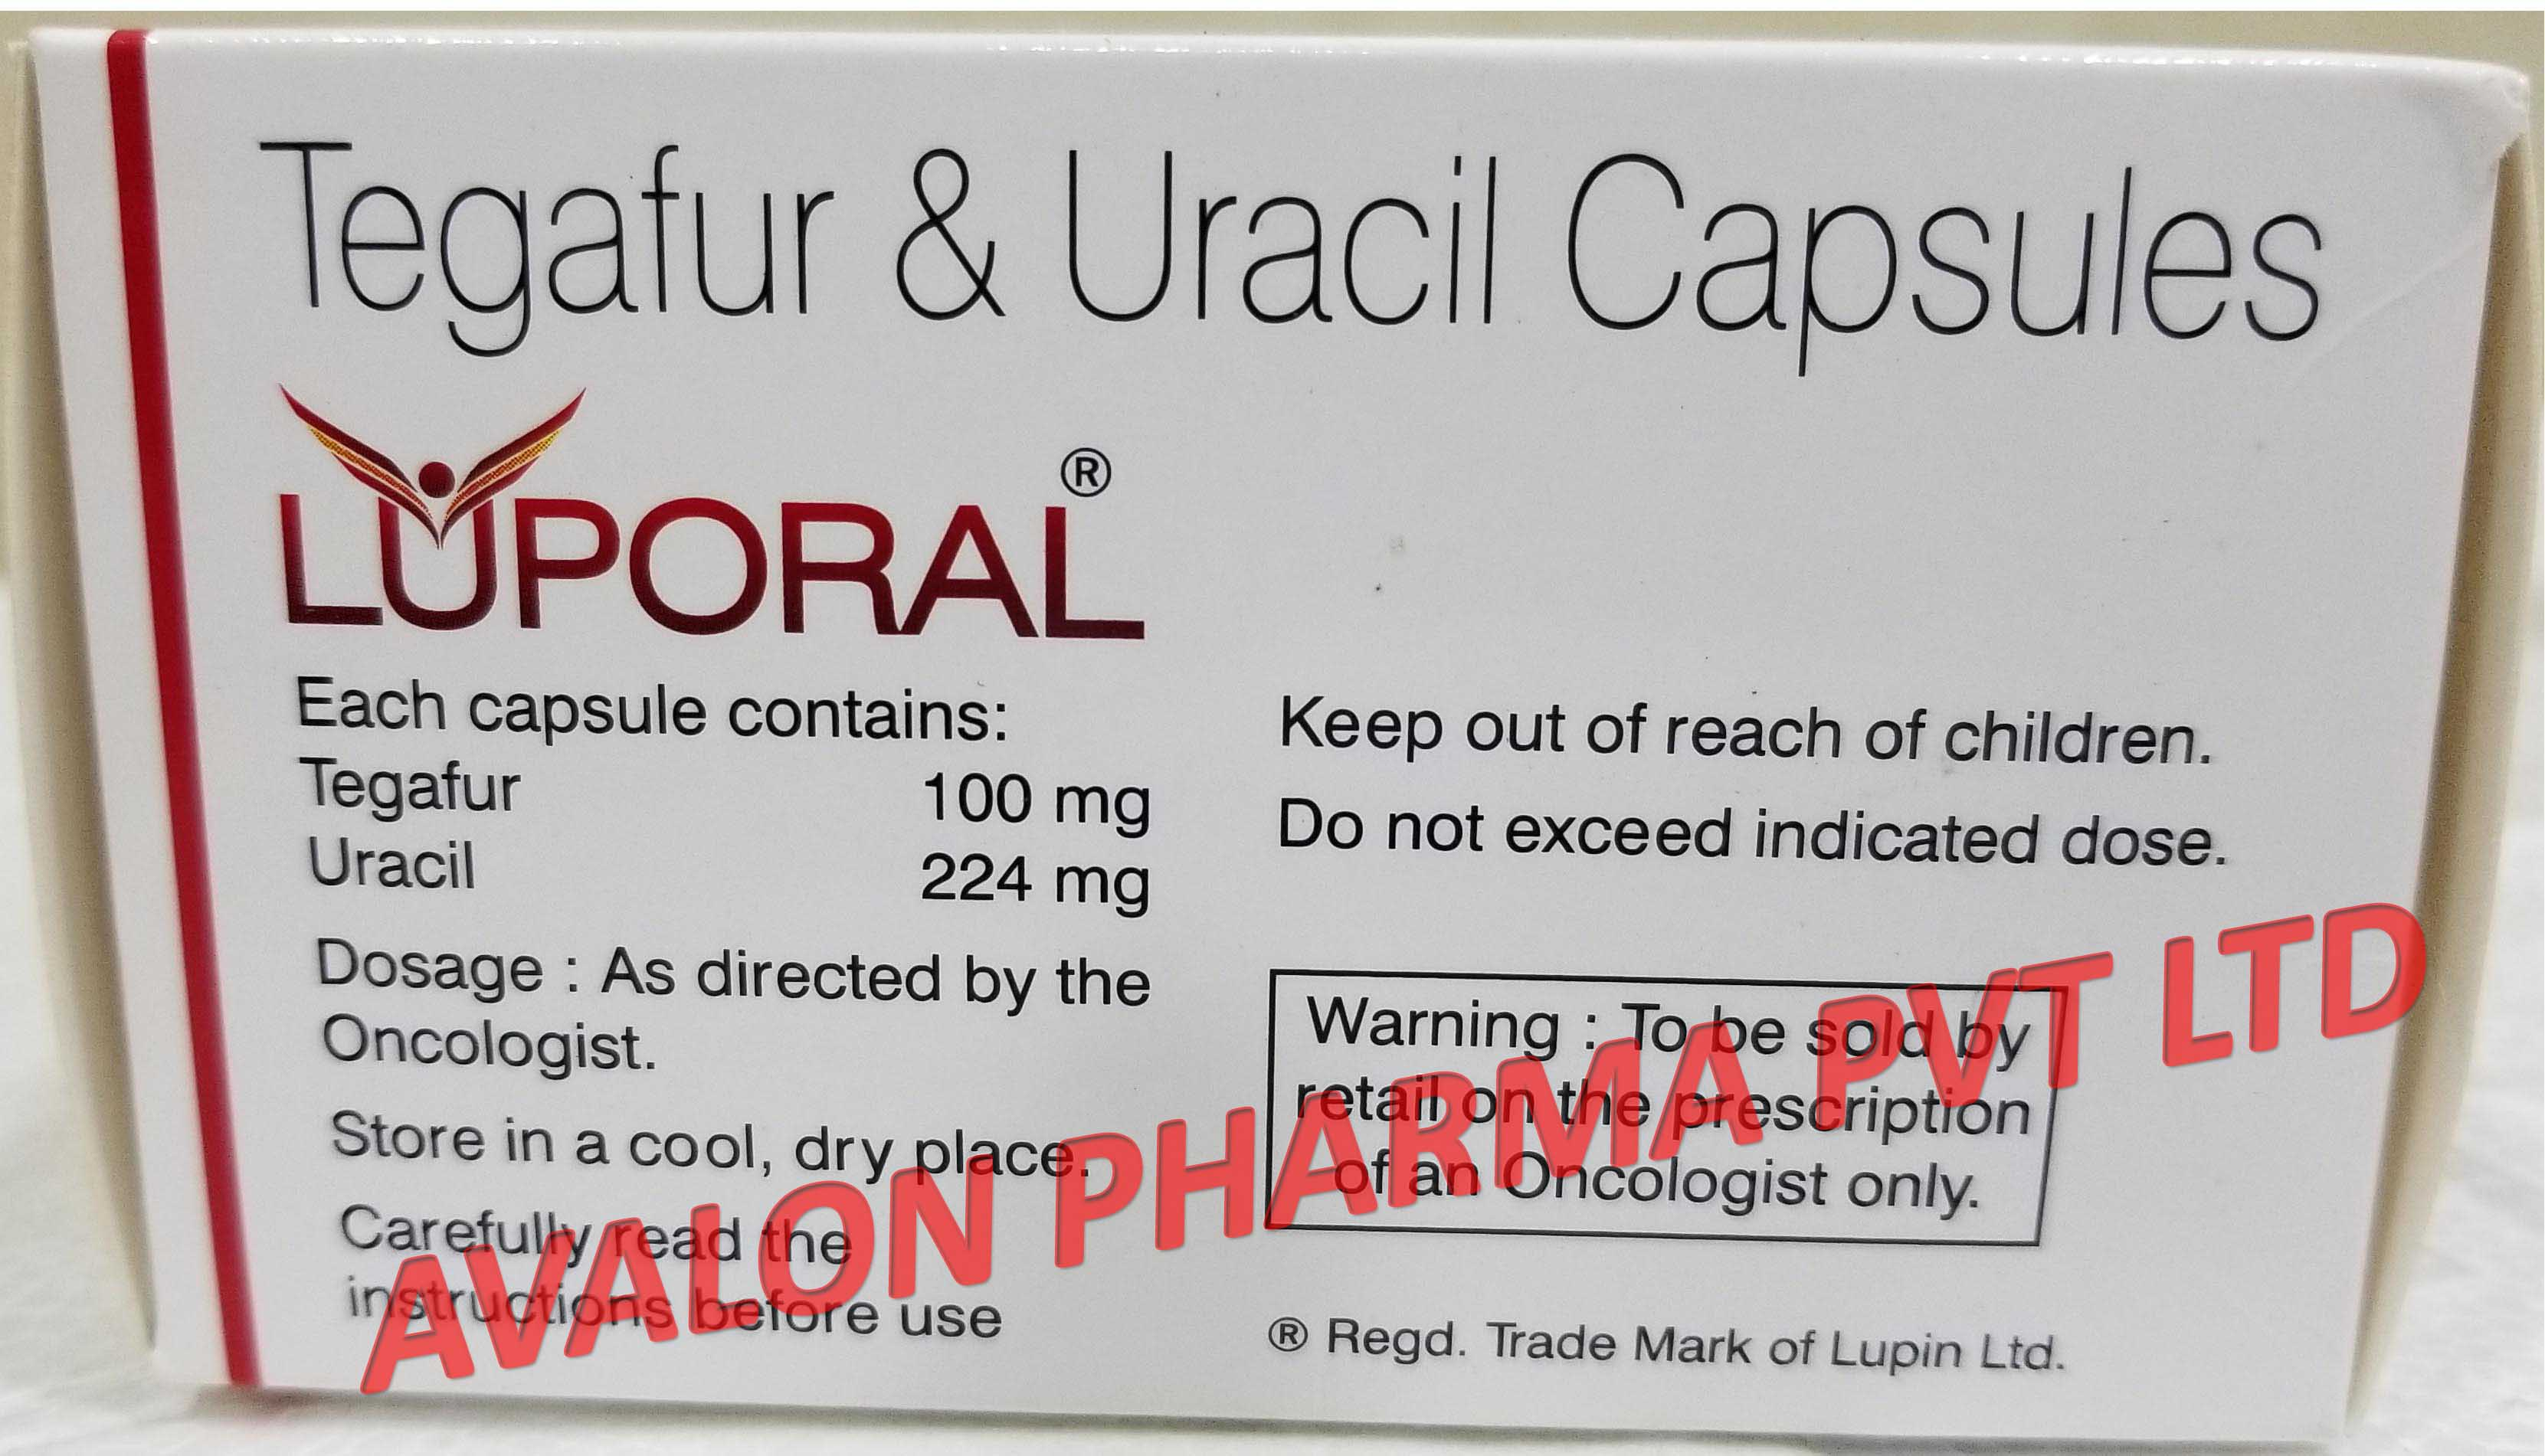 Tegafur and Uracil capsules